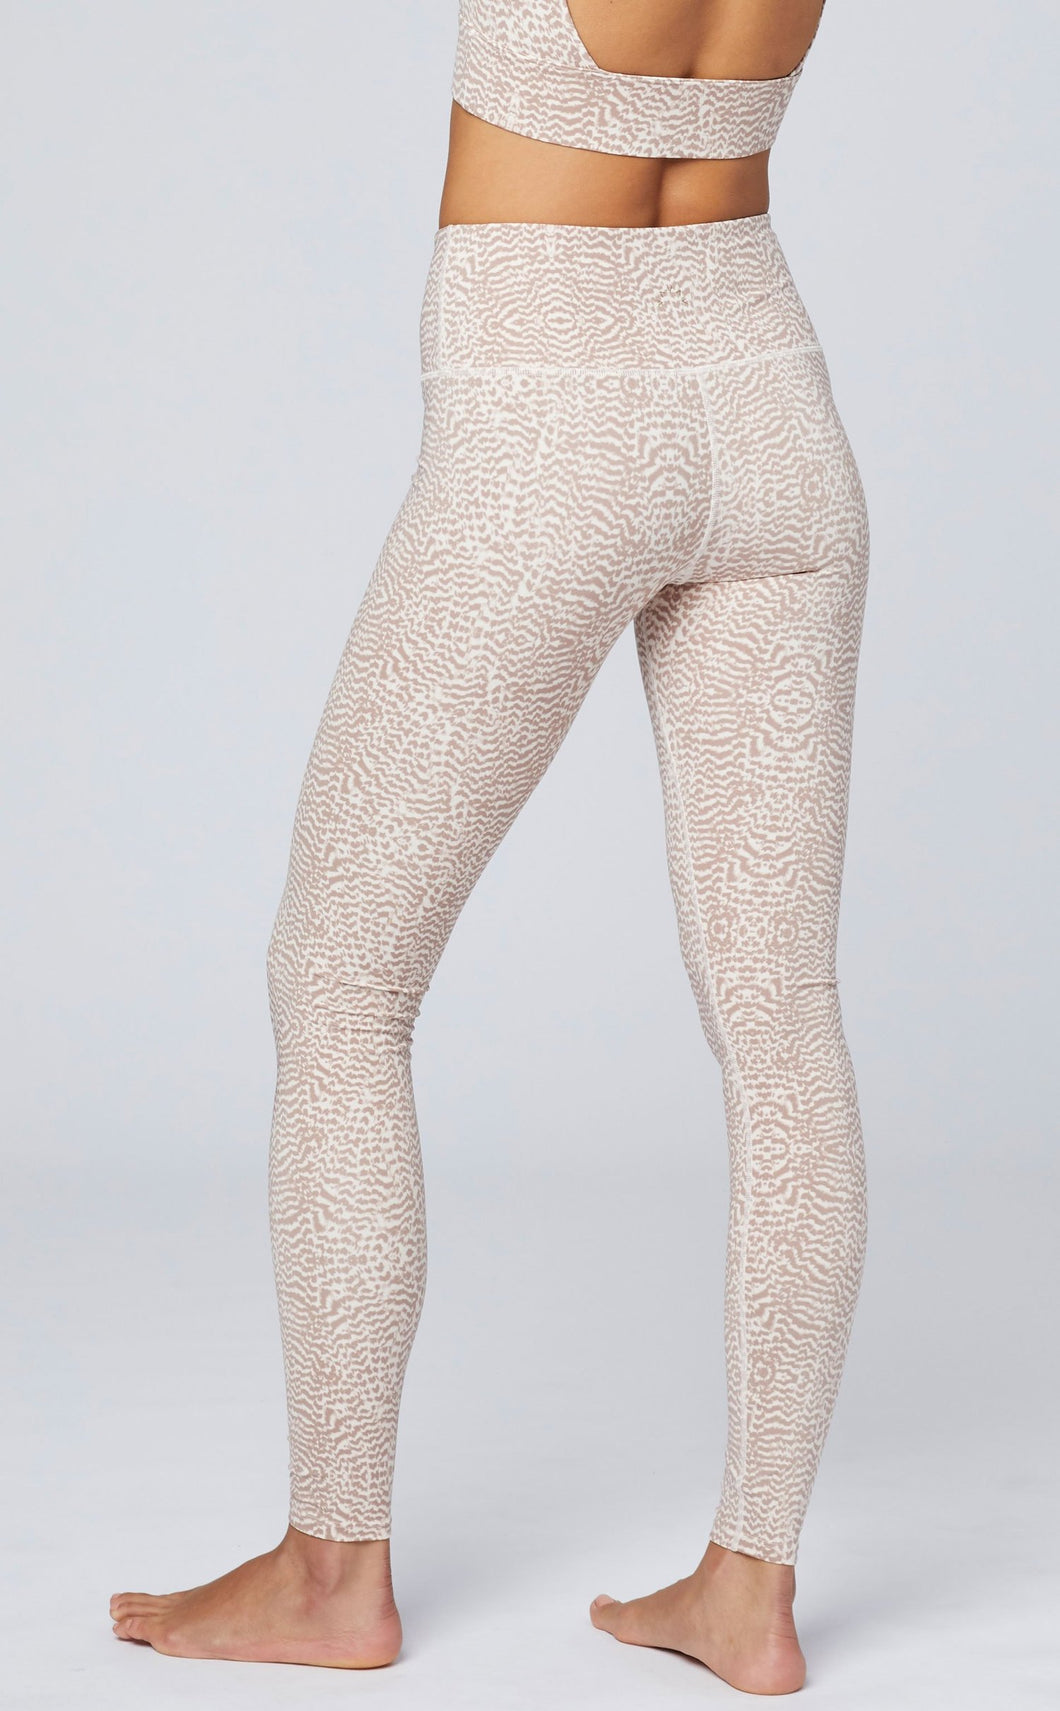 Varley Duncan Legging - Rose Feathers